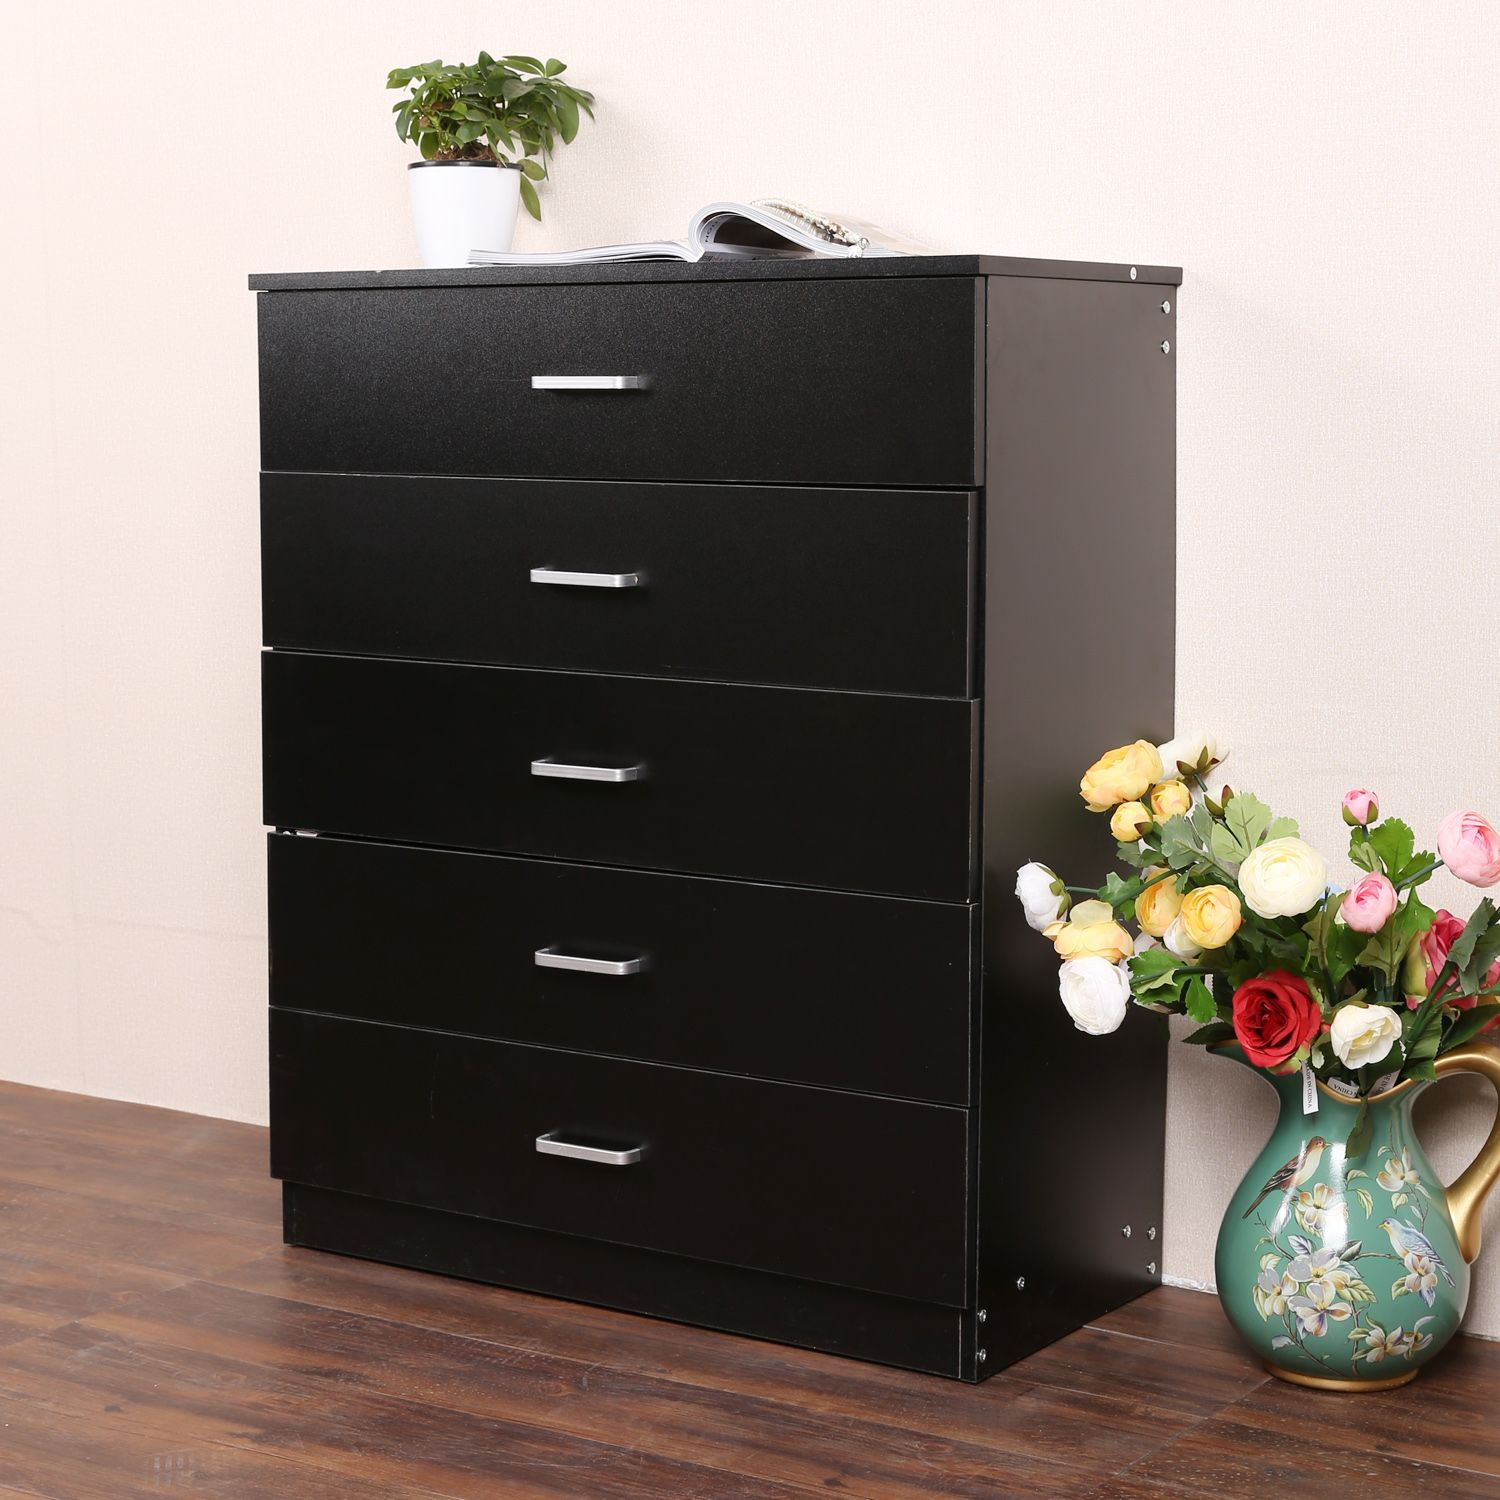 Desk Storage Storage Cabinets Storage Boxes Home Furniture Drawers Desks Bedding Buy Now